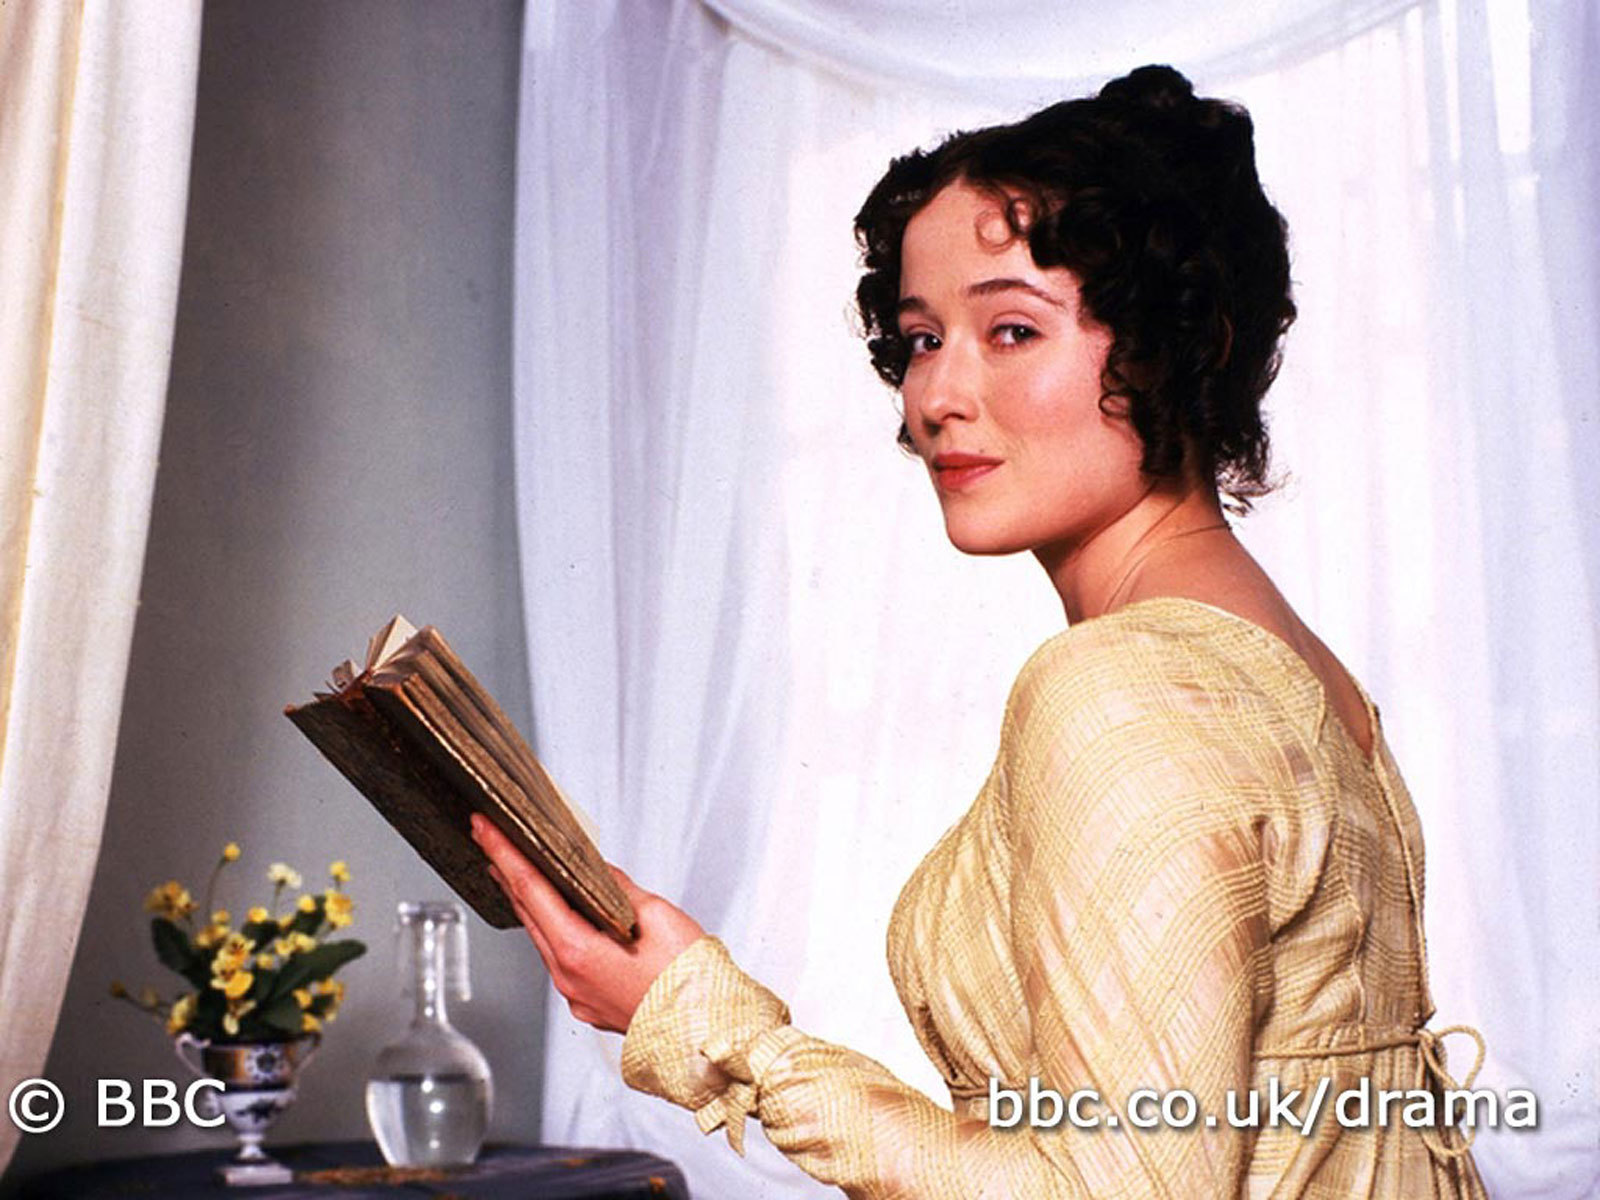 pride and prejudice Pride and prejudice chapter 1 i t is a truth universally acknowledged, that a single man in possession of a good fortune, must be in want of a wife.